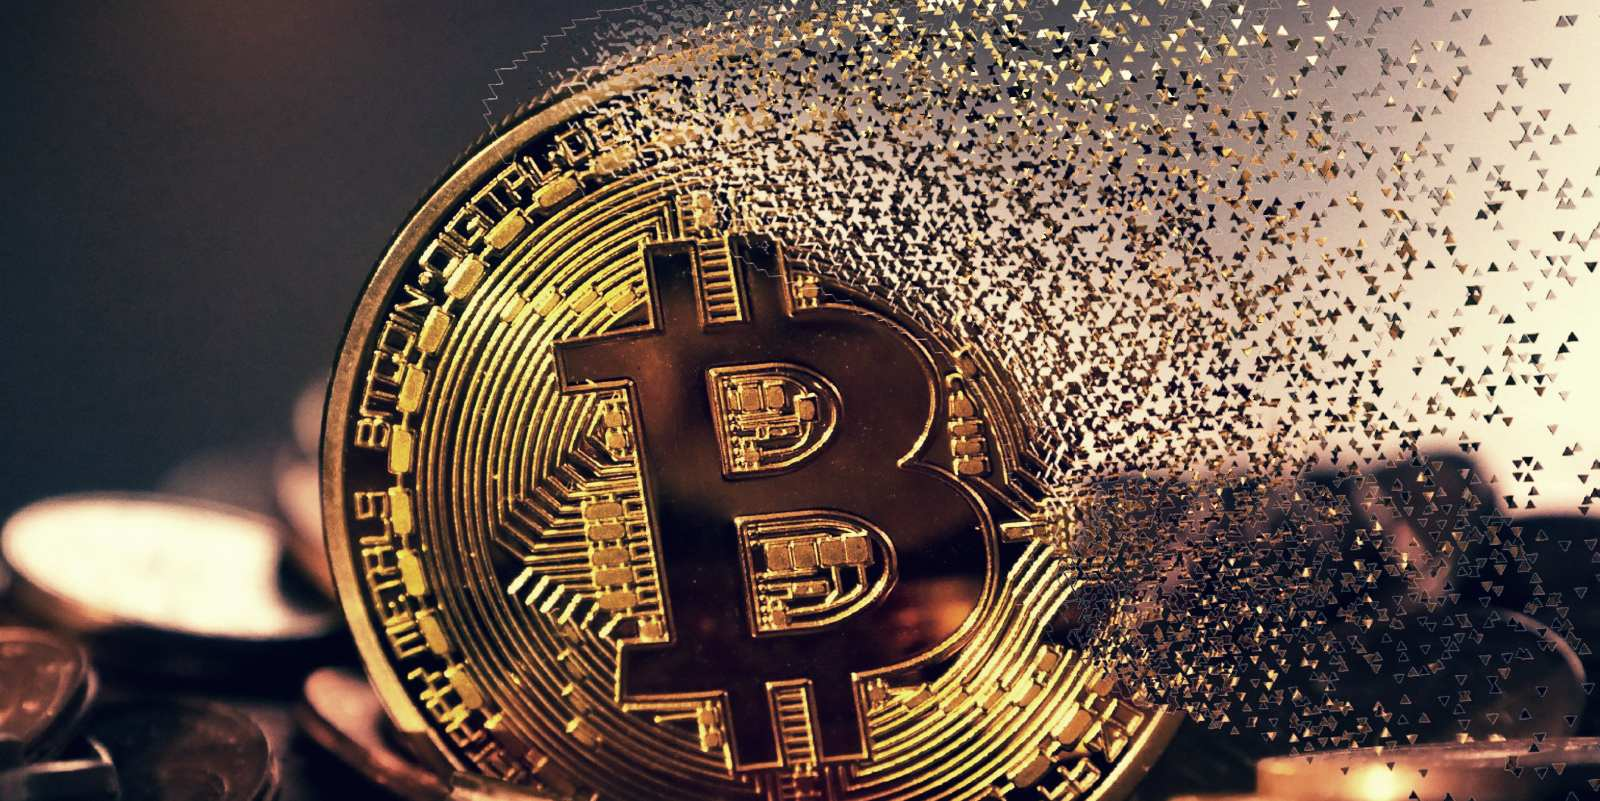 A Bitcoin being disintegrated.